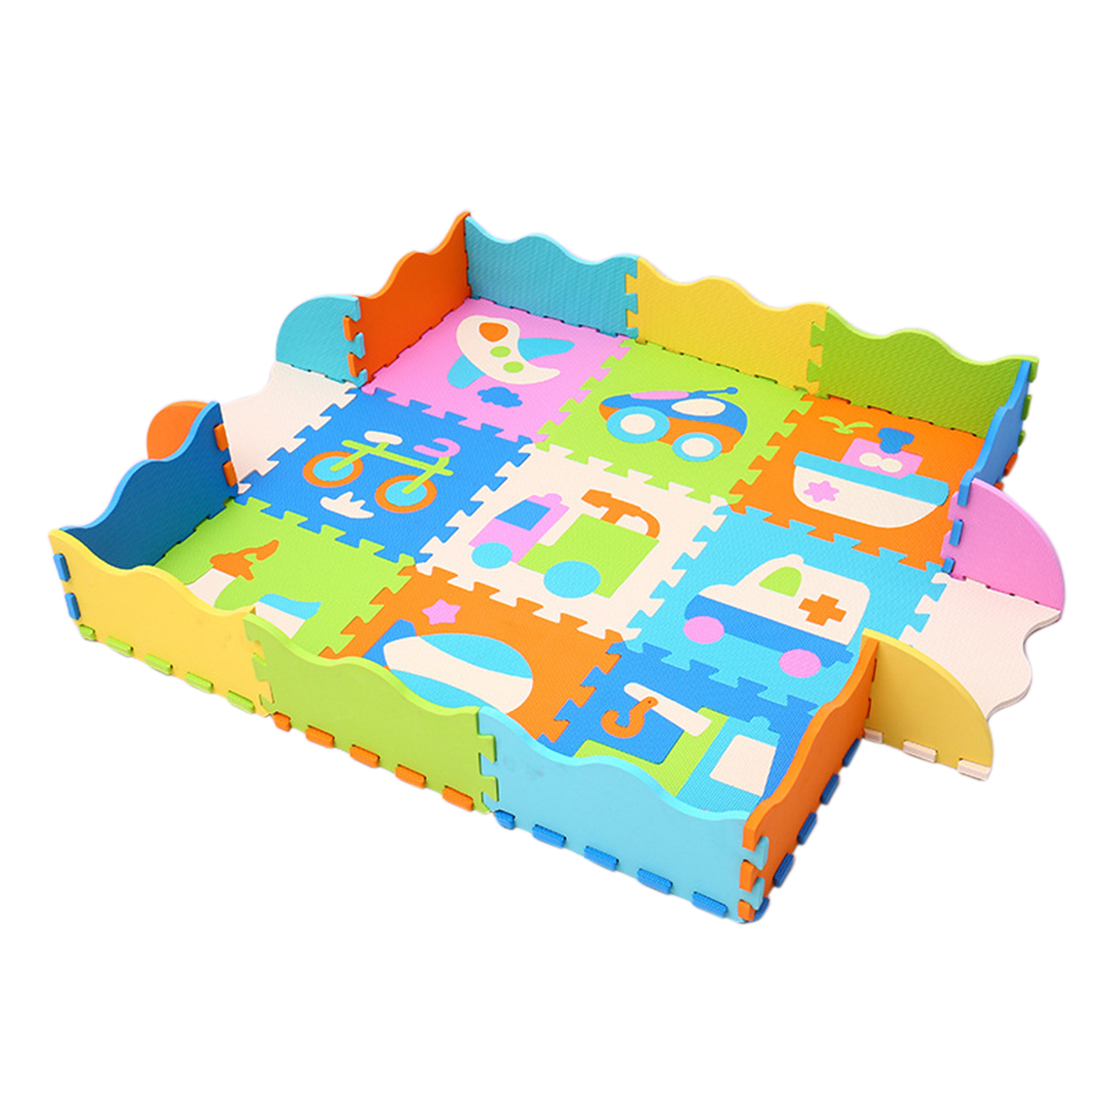 30 X 30 X 1cm Cartoon Animal EVA Foam Puzzle Mats Baby Floor Non-Slip Mat Baby Crawling Mats With Fence Shatter-Resistant Pad